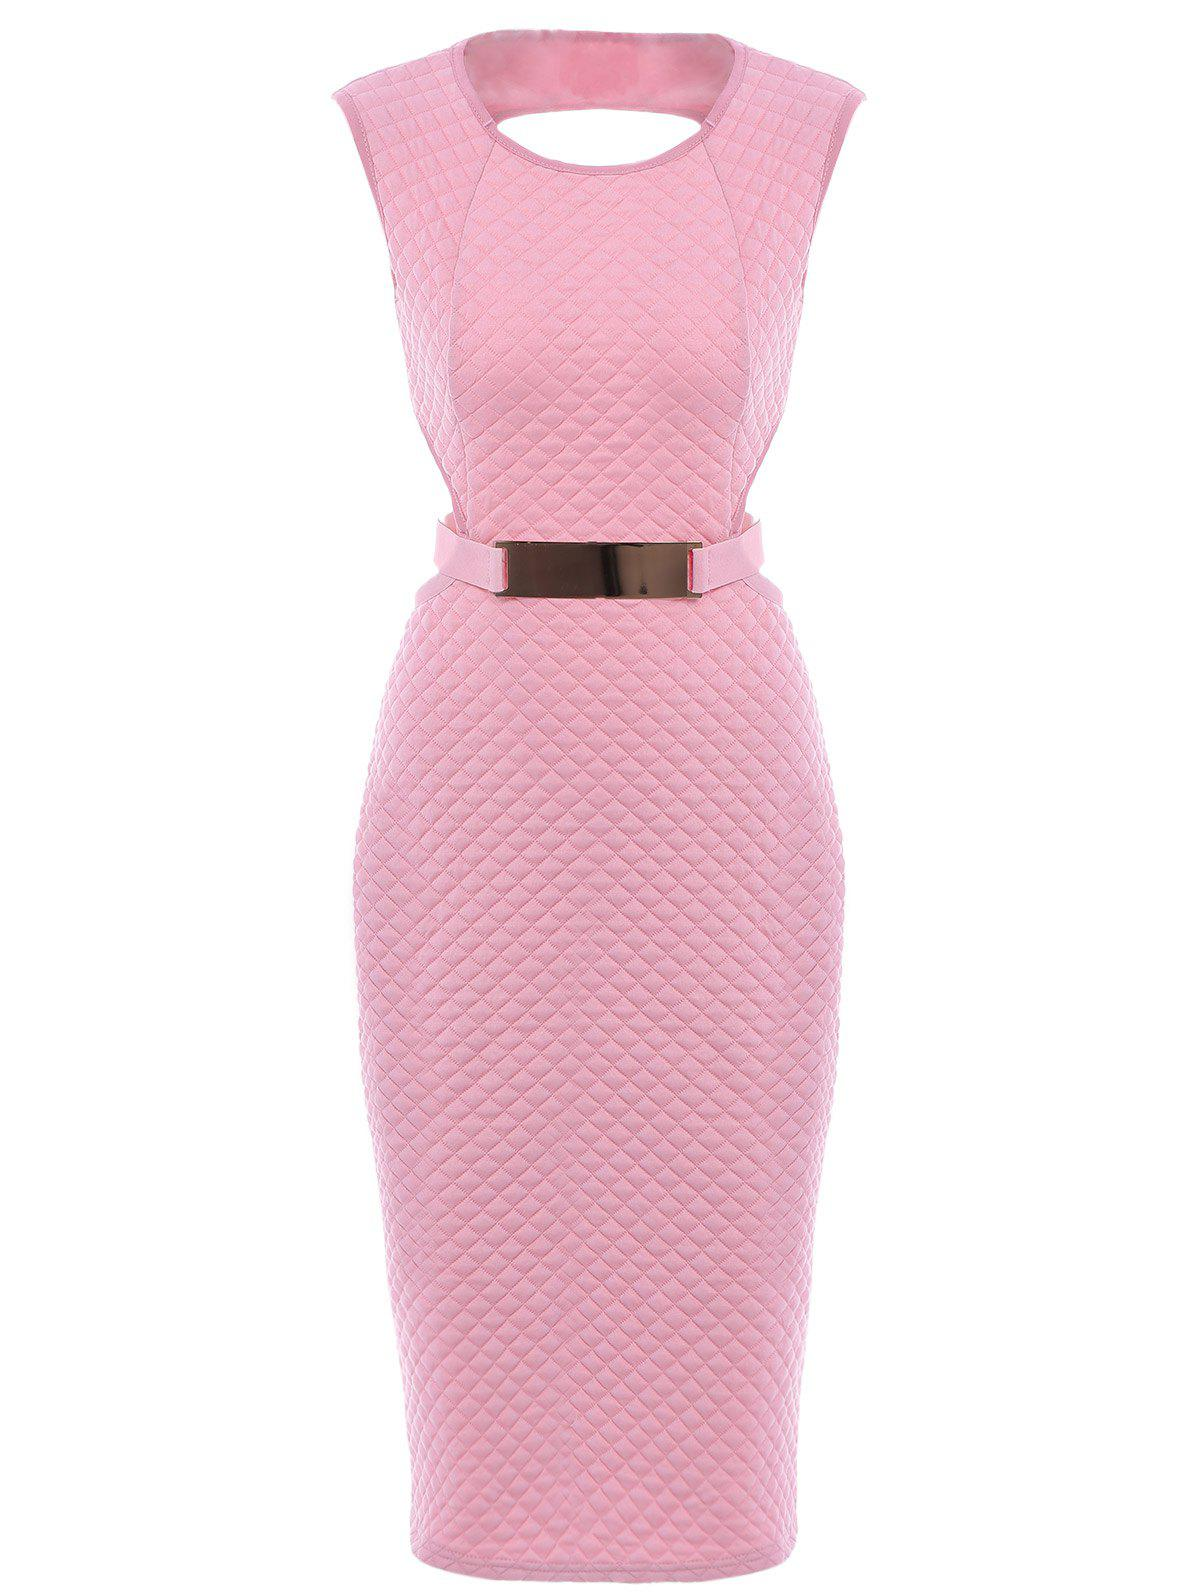 Sexy Sleeveless Round Collar Pure Color Slimming Cut Out Women's Dress - PINK S